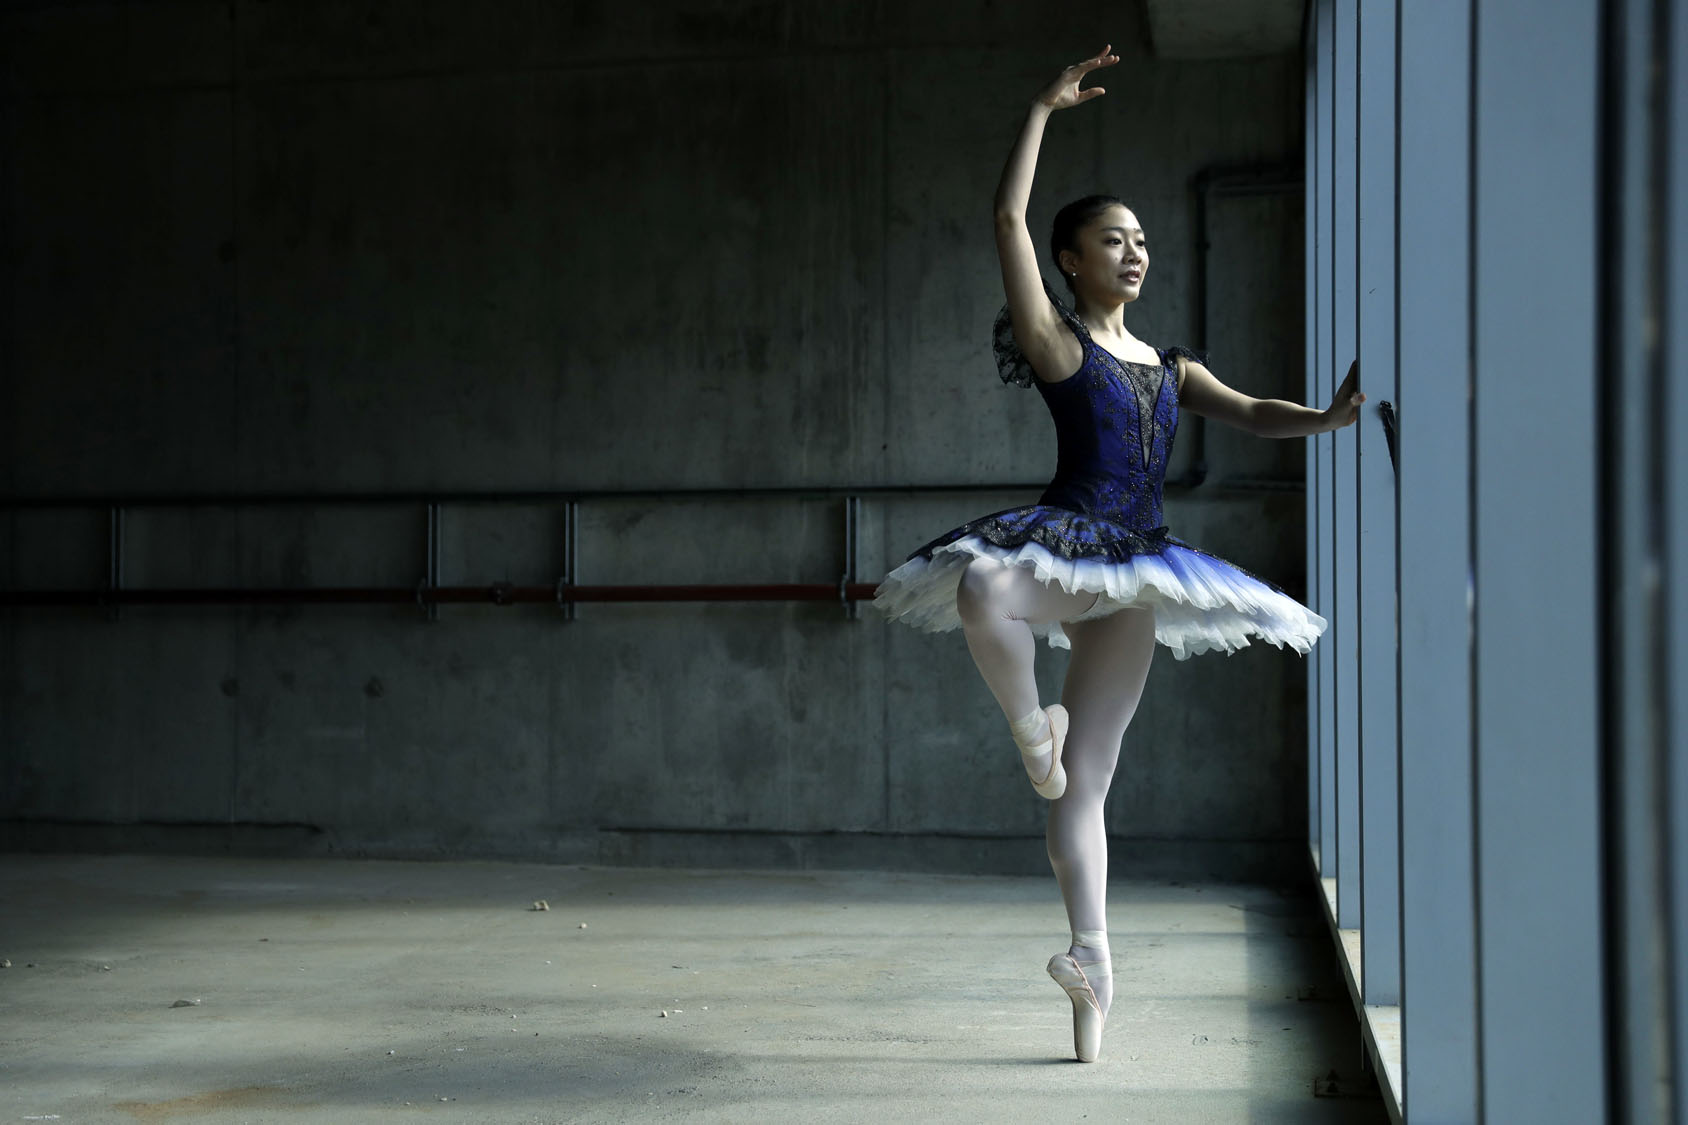 A look inside the Central School of Ballet in London